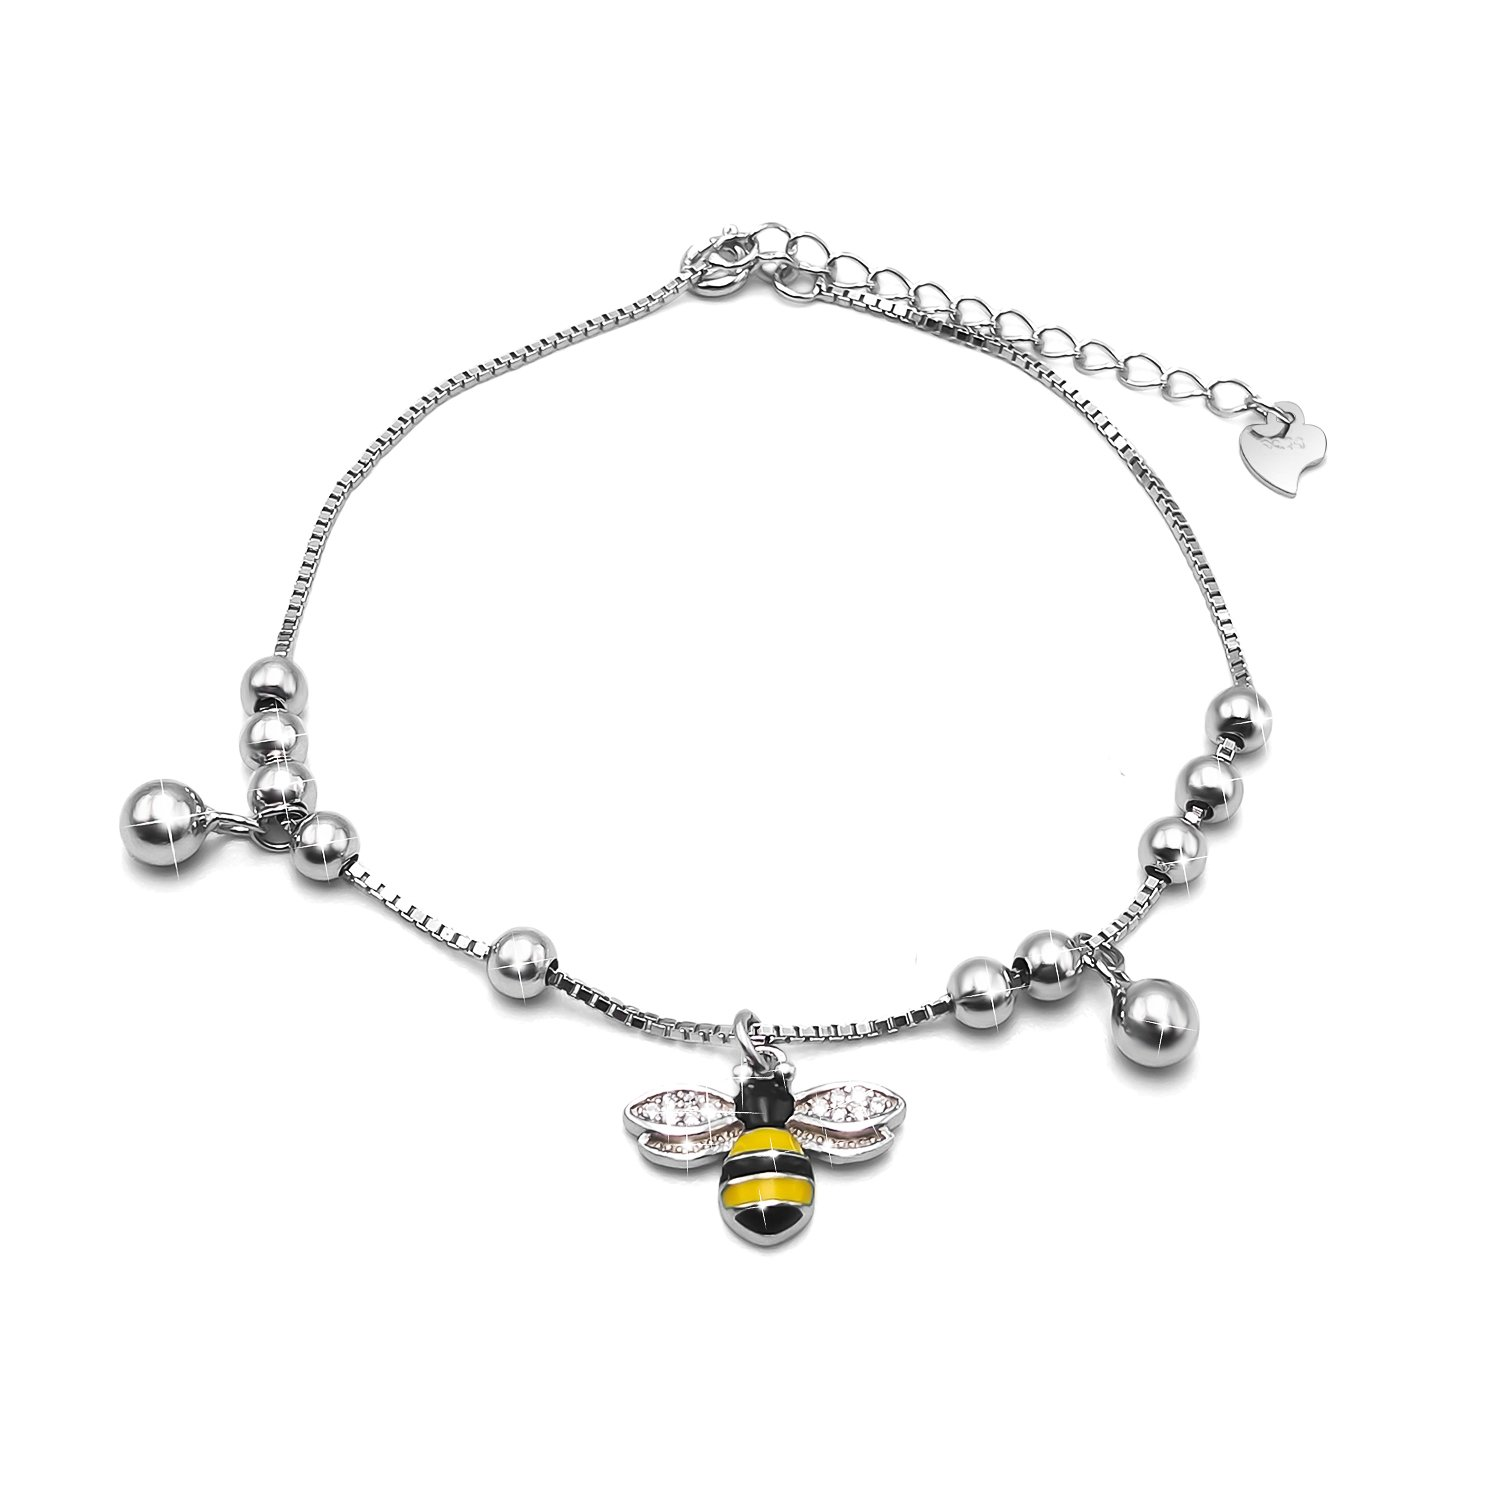 Women Queen Bee Adjustable Anklet Big Bracelet 925 Sterling Silver Lady Girls Children Foot Chain Jewellery Gift for Her(Length: 20+4cm) MAX jewellery JL-2584